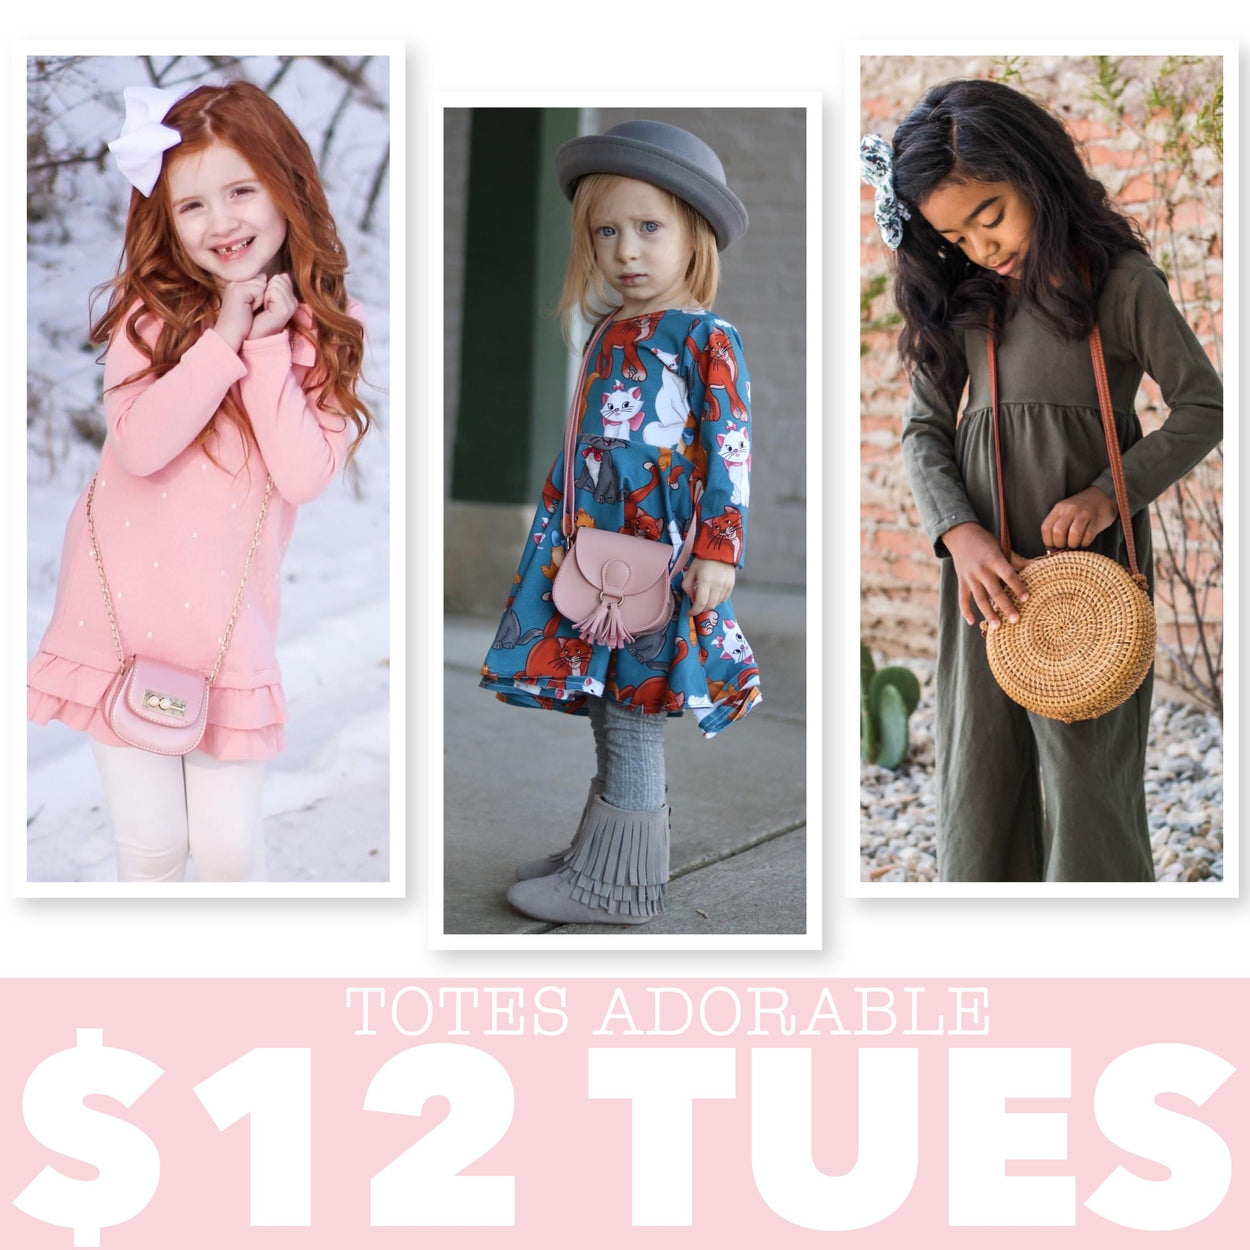 $12 TUESDAY!